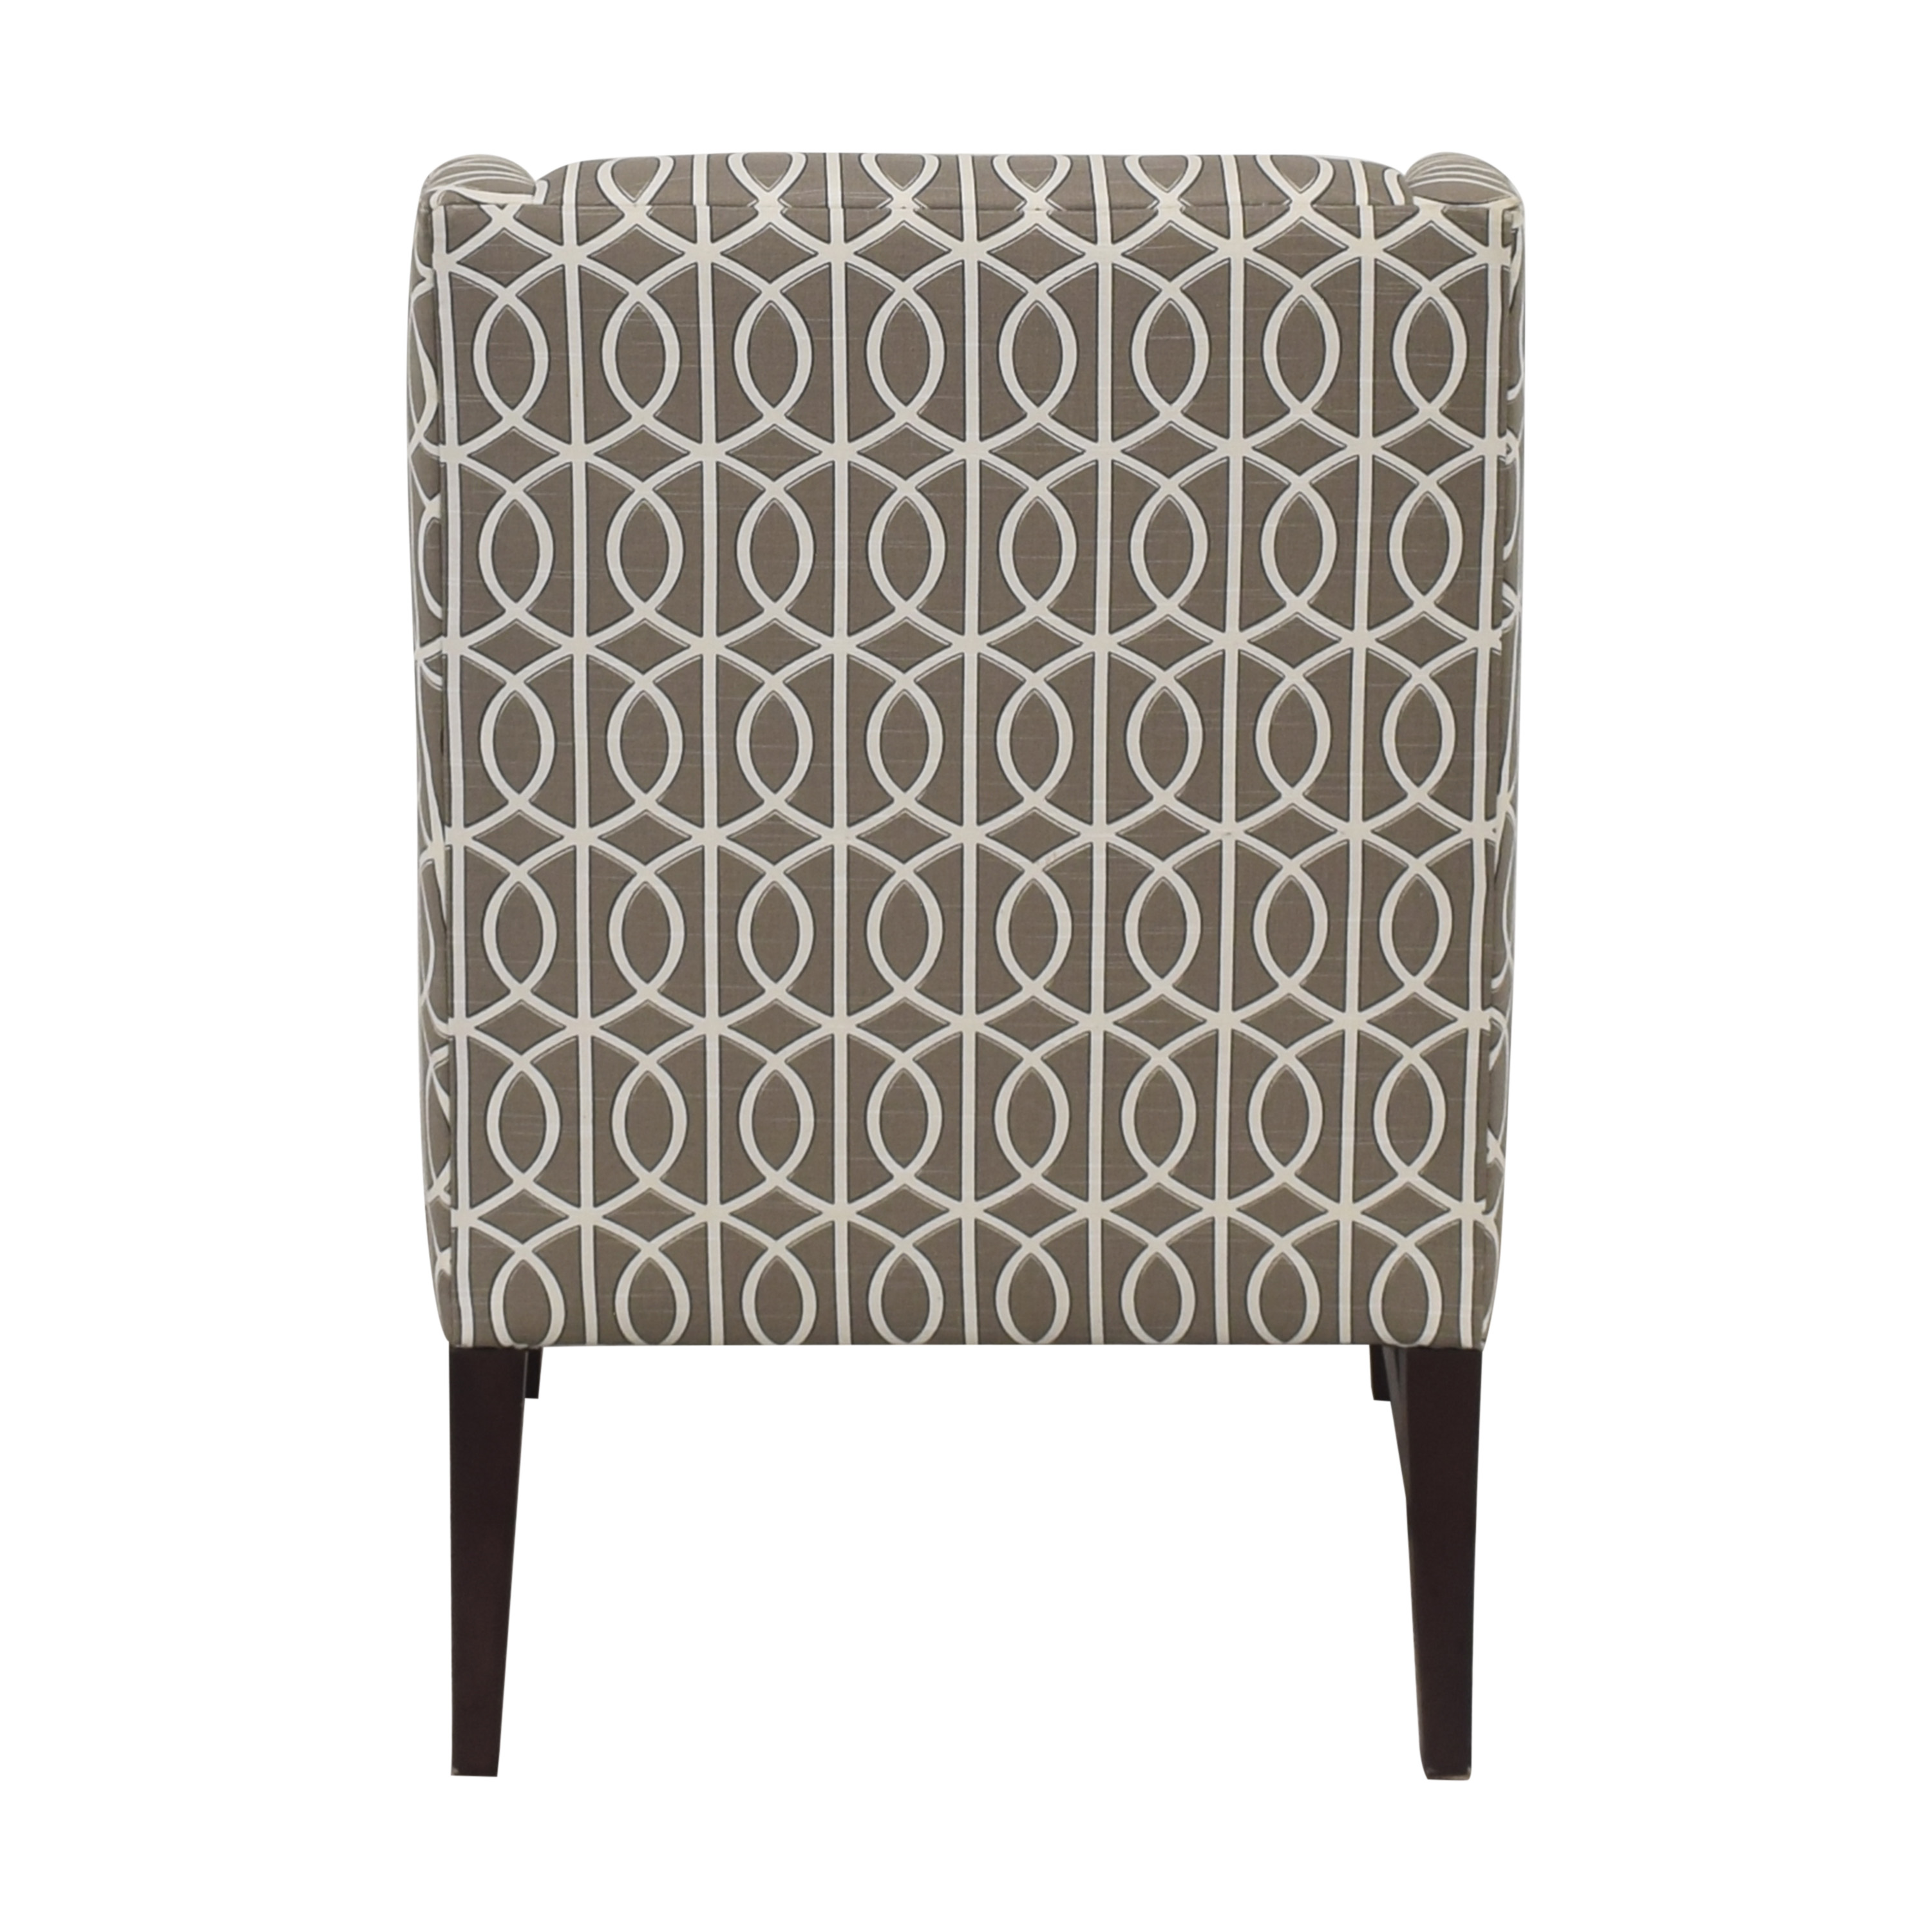 buy Crate & Barrel Chloe Armchair Lounge Accent Chair Crate & Barrel